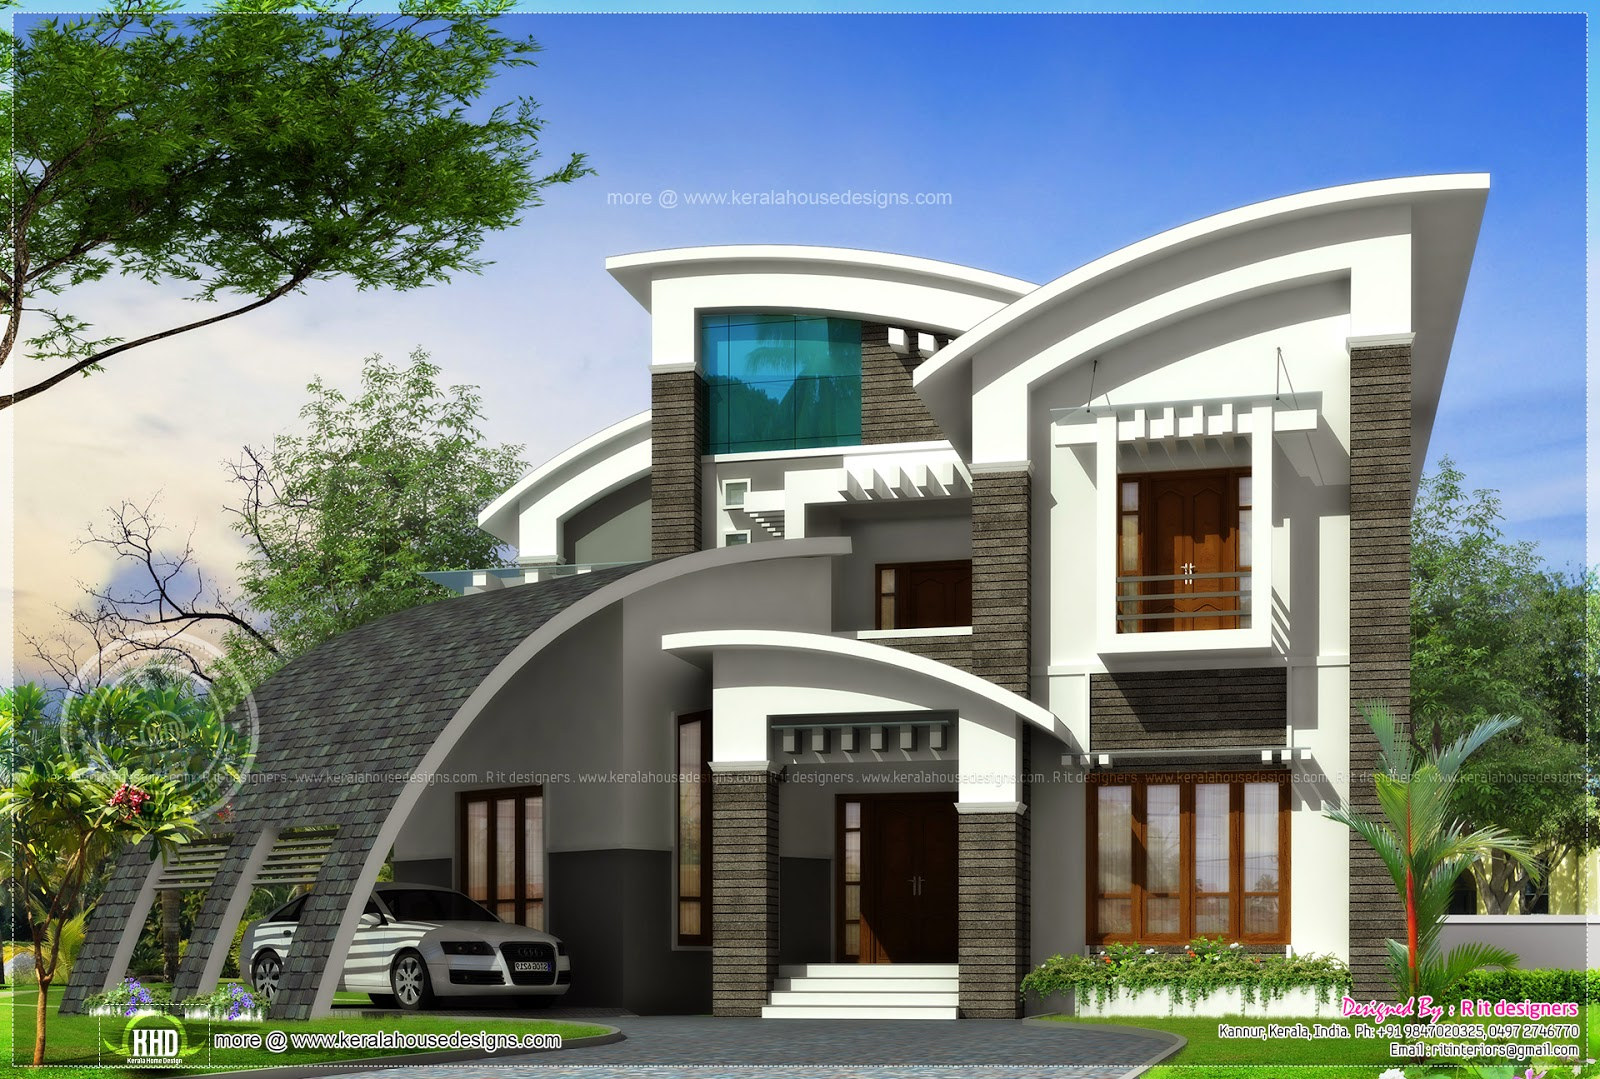 Super luxury ultra modern house design kerala home for Luxury style house plans